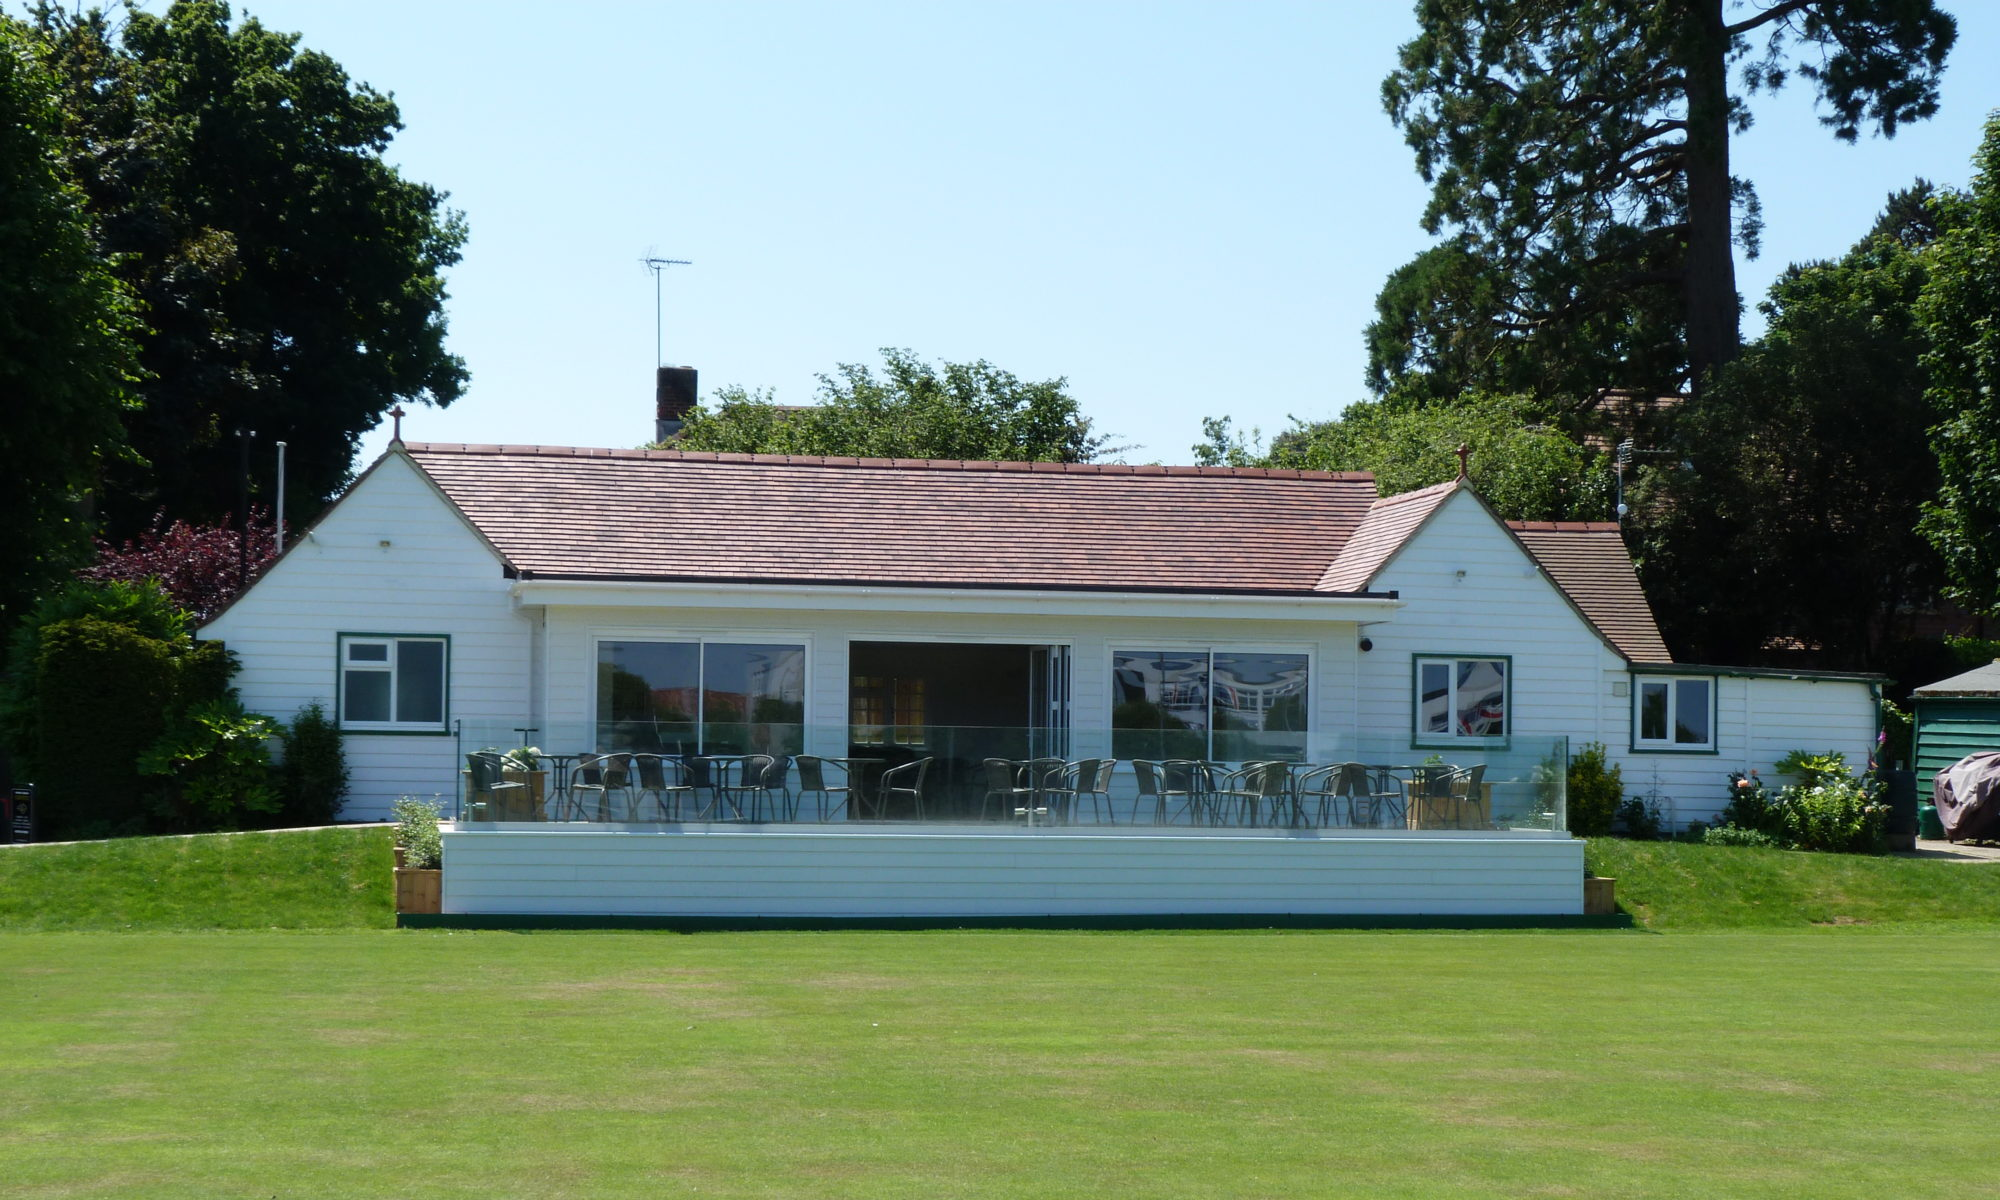 Ryde Lawn Tennis & Croquet Club